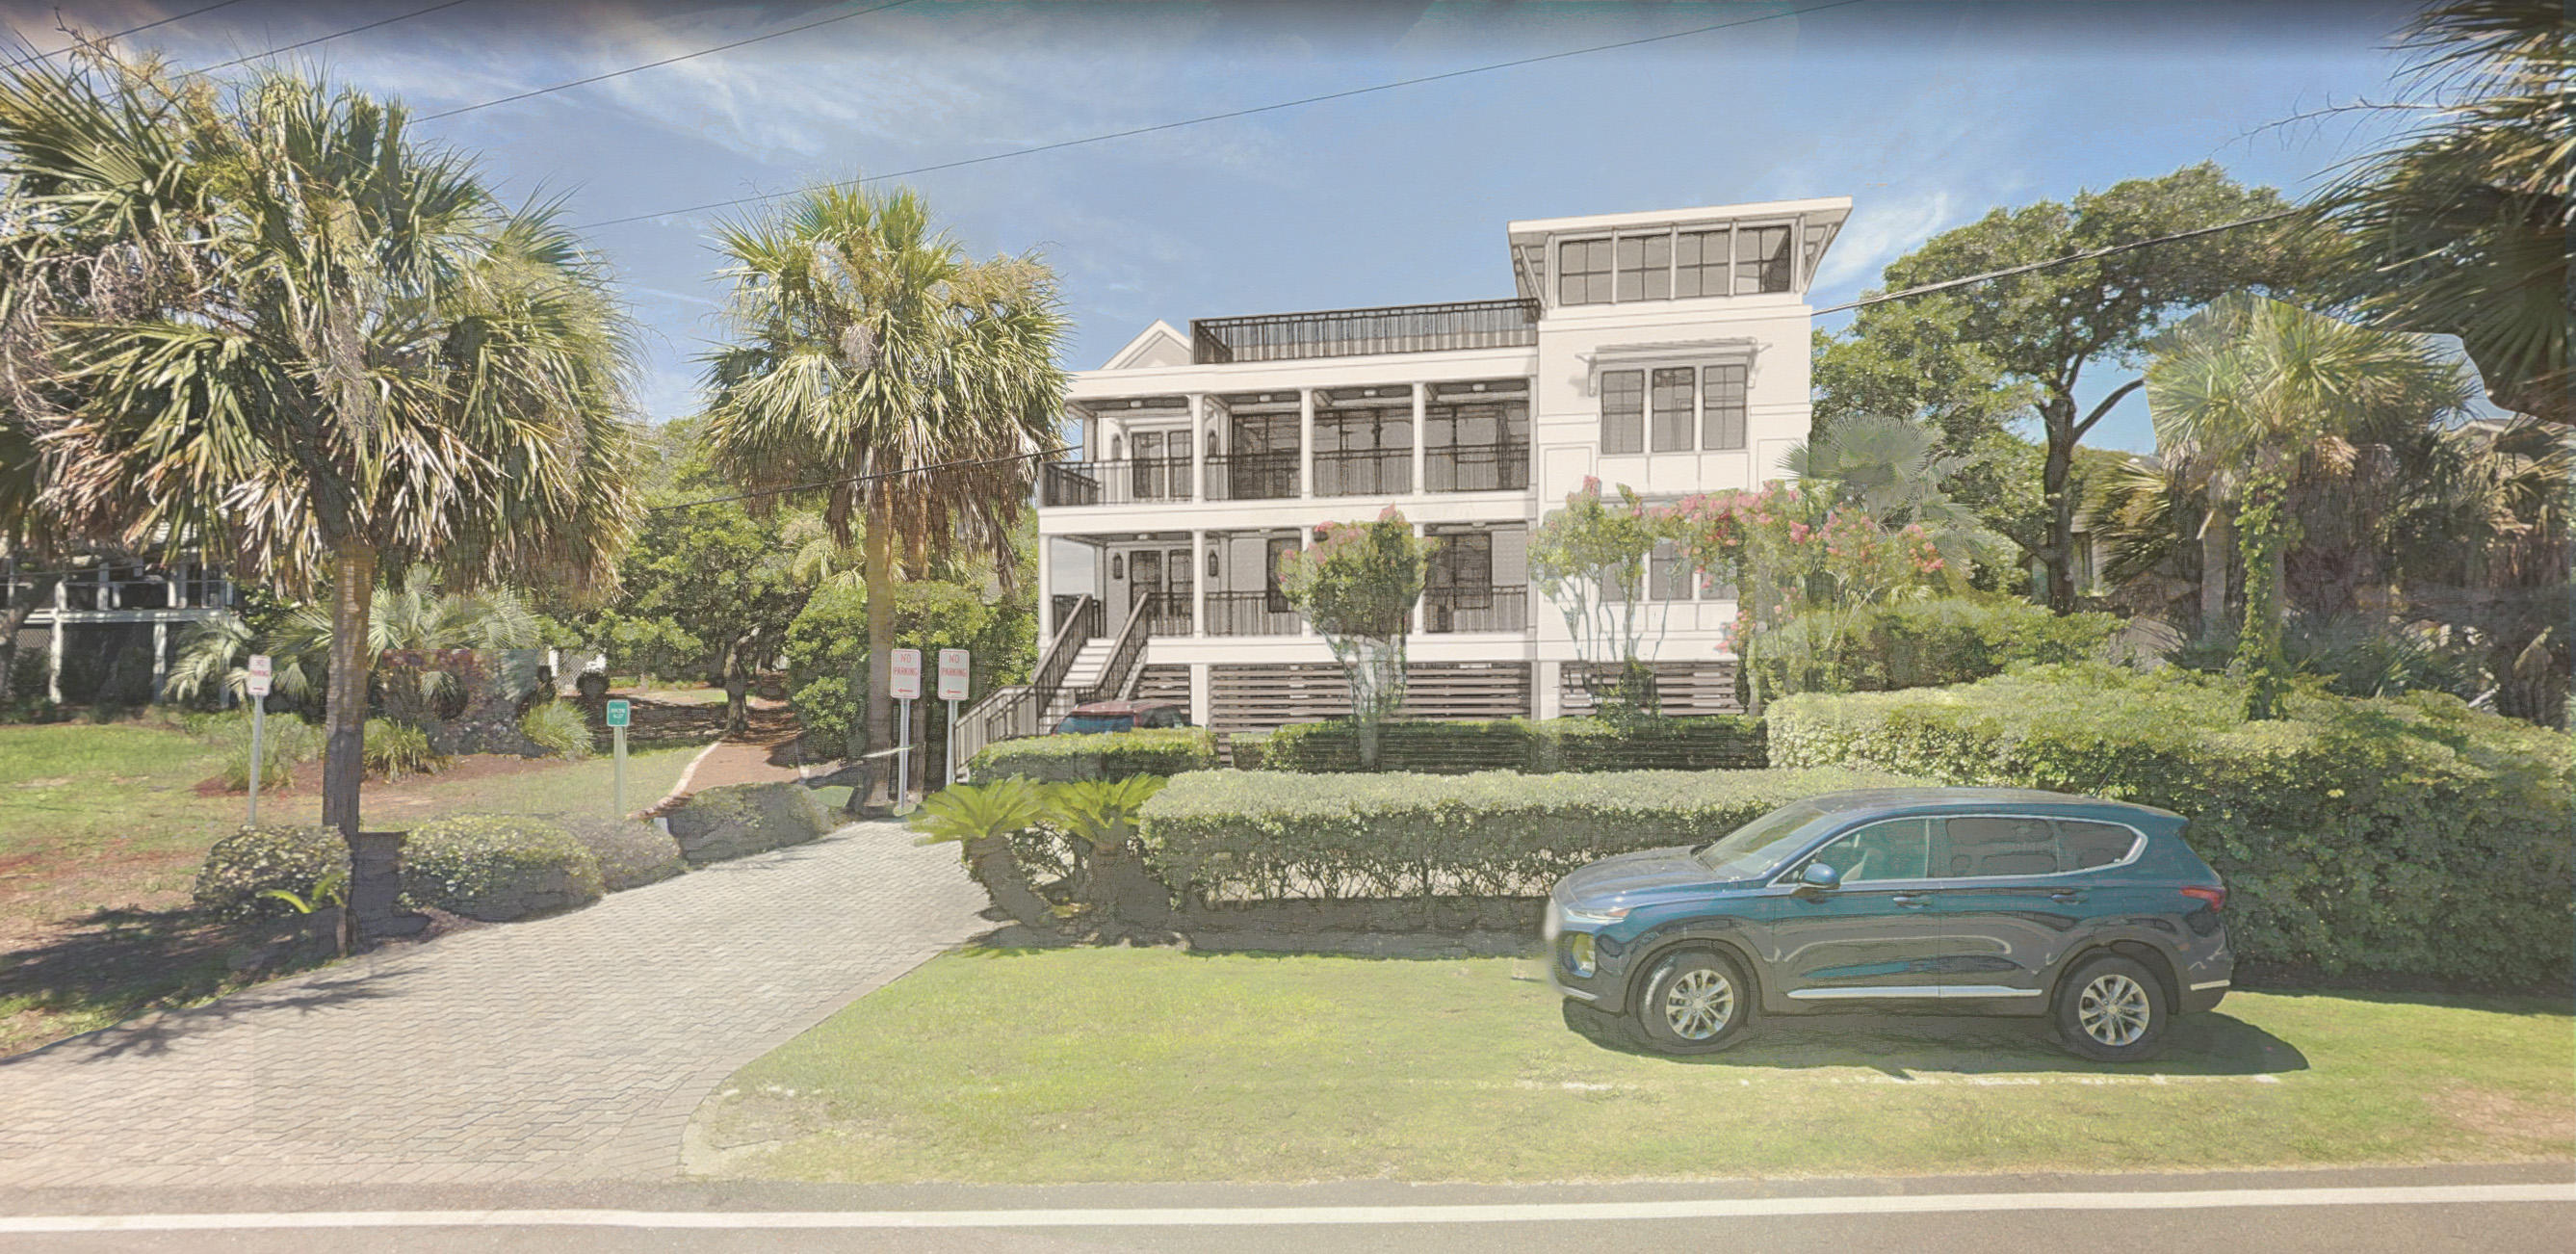 11 Abalone Alley Isle Of Palms, SC 29451